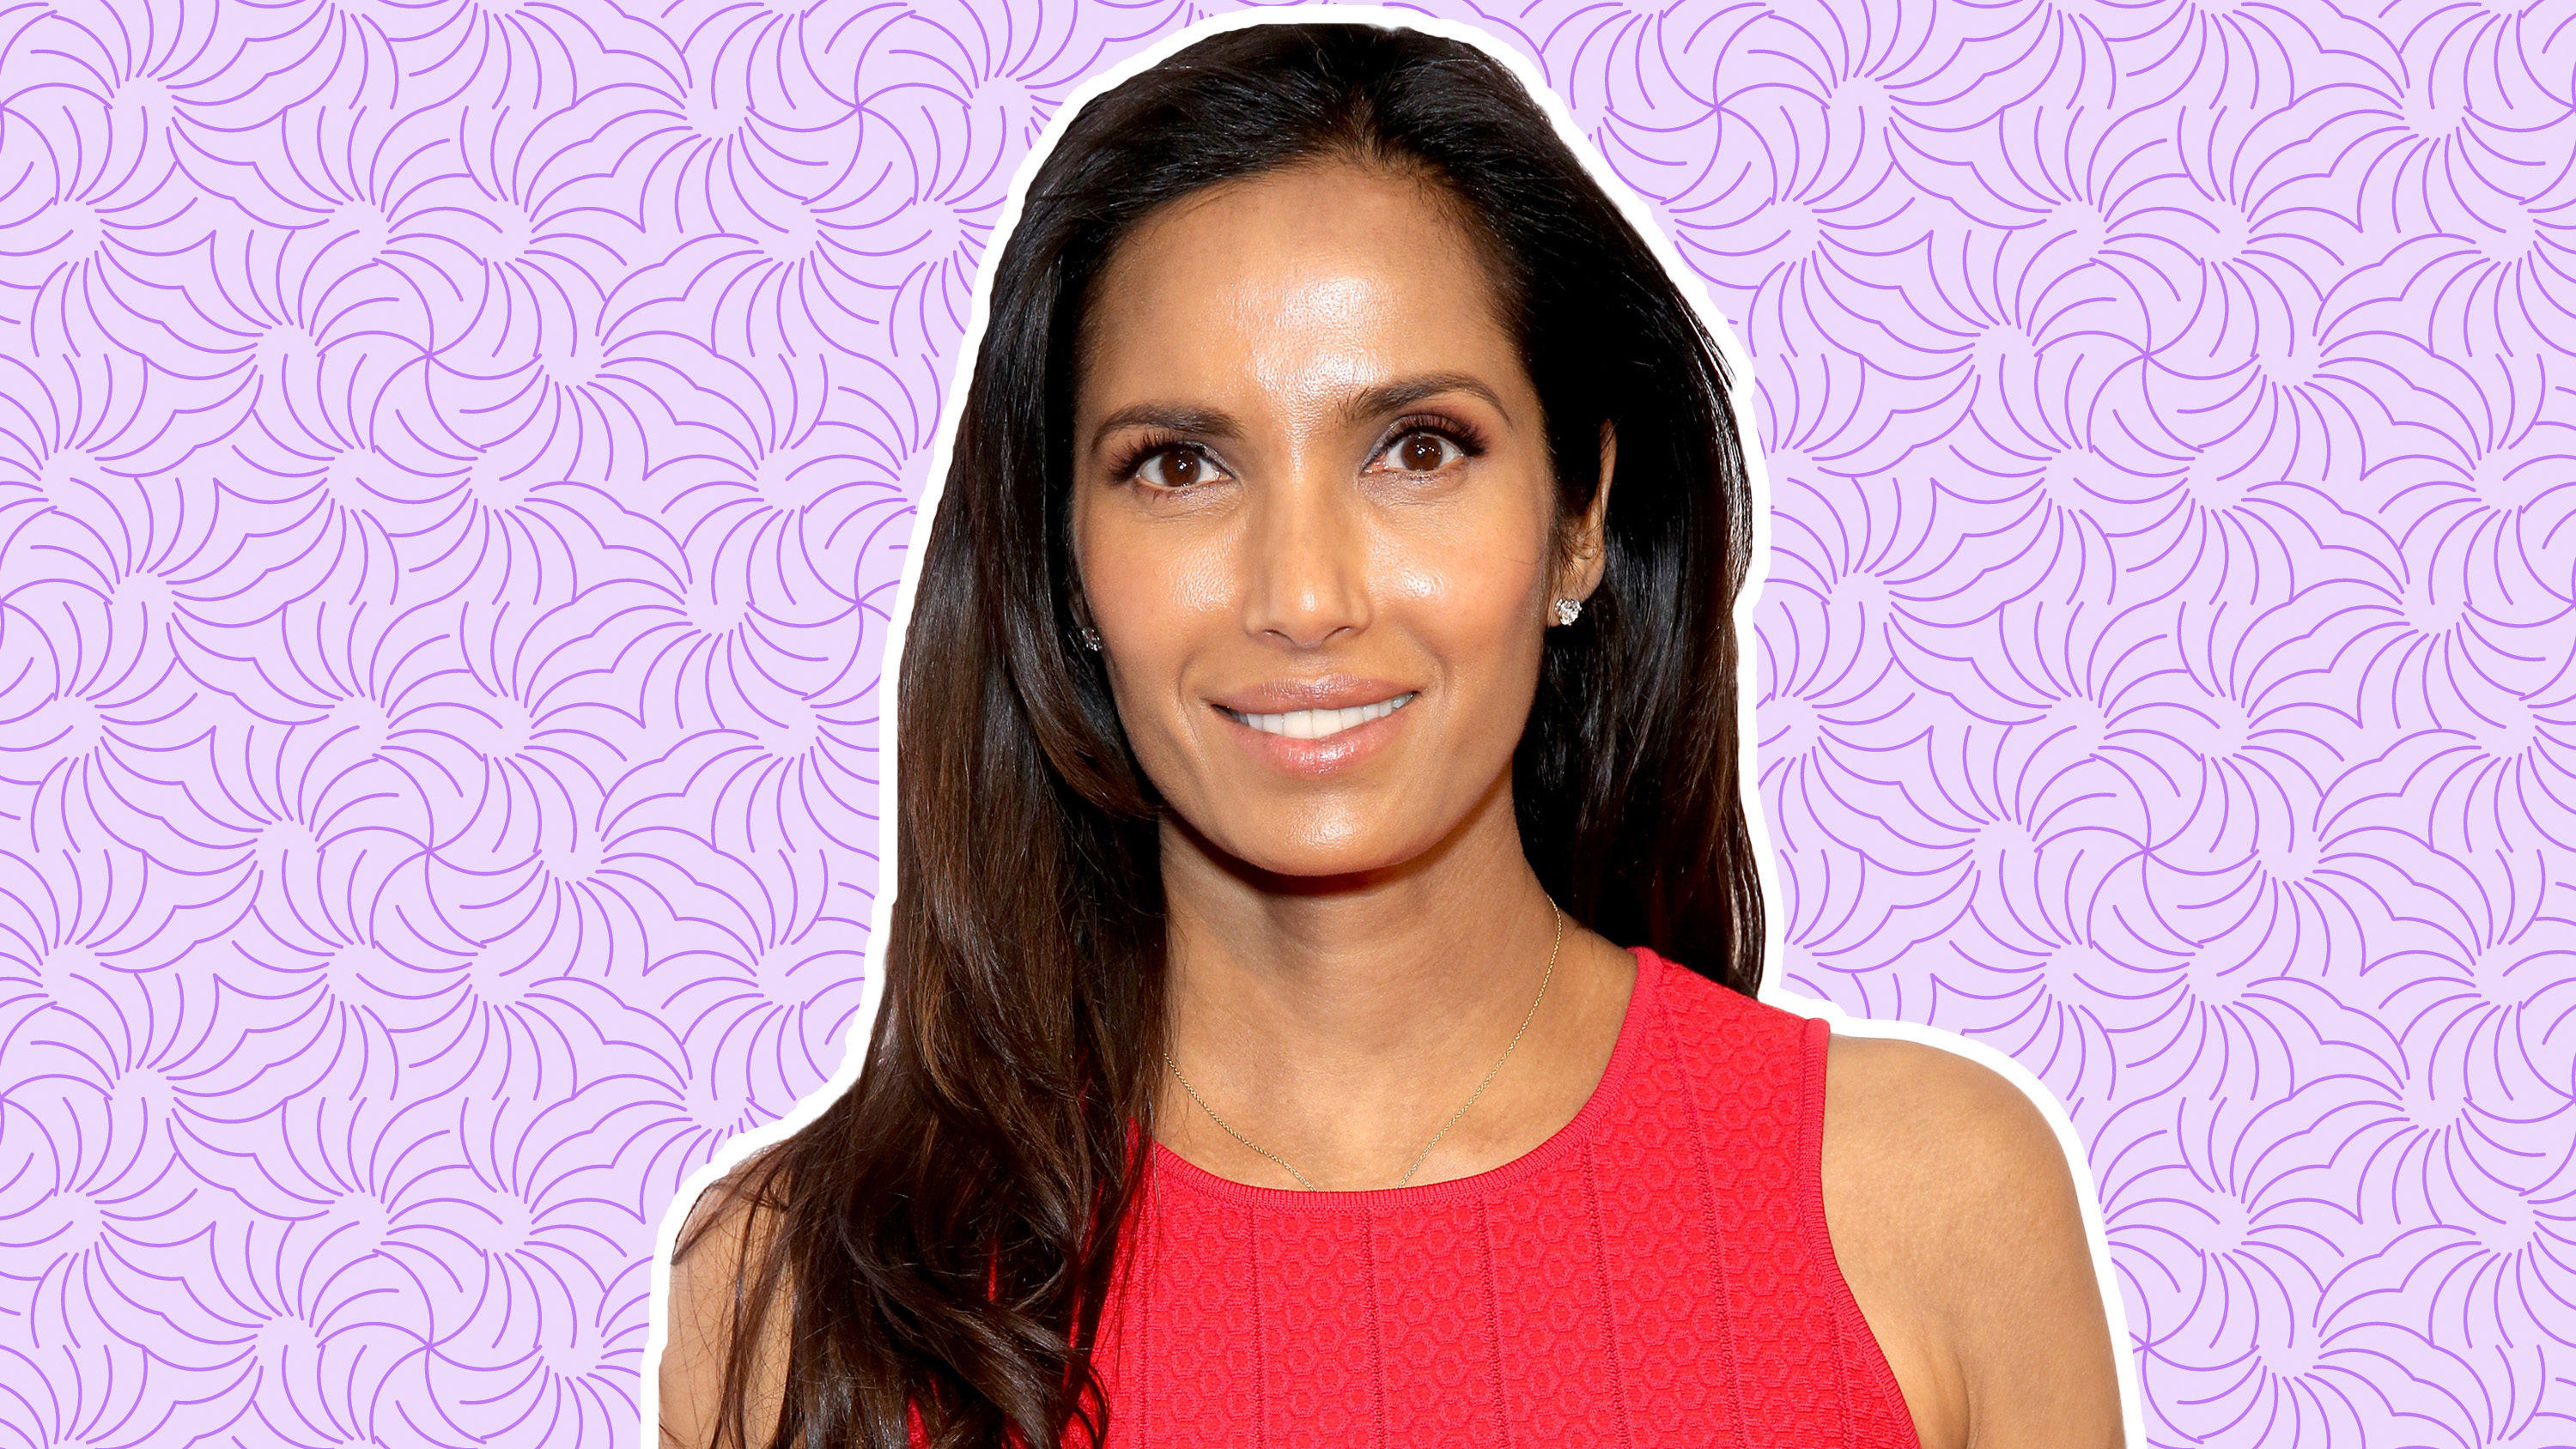 Padma Lakshmi attends the Moves Power Forum 2016 held at Steinway Hall on April 6, 2016 in New York City.